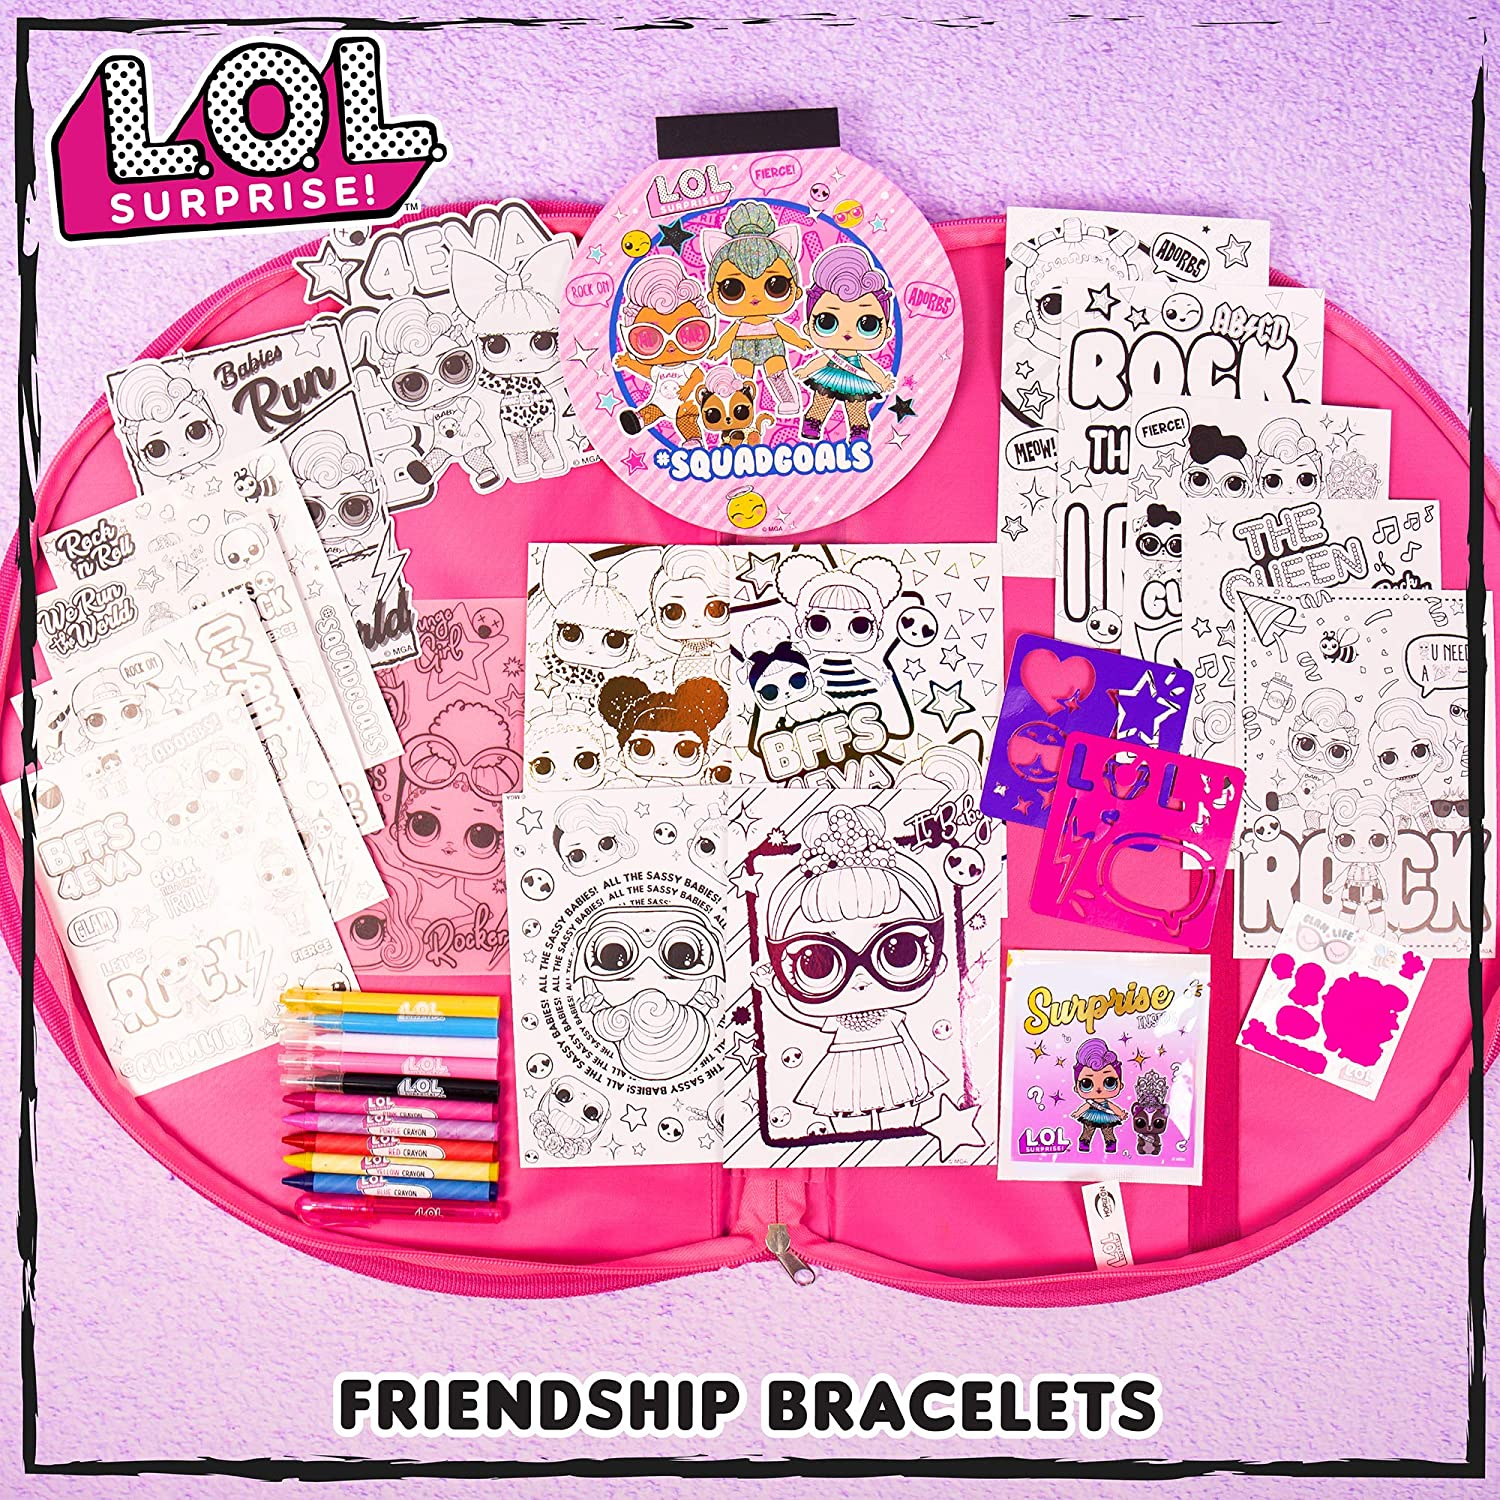 LOL Surprise Sketch /& Surprise Portfolio by Horizon Group USA,DIY Craft Kit,Includes 30 Pages Sketch Pad,Coloring Pages,Scratch /& Reveal Sticker Sheet,Stencil Sheets,Gel Pens Markers,Crayons /& More